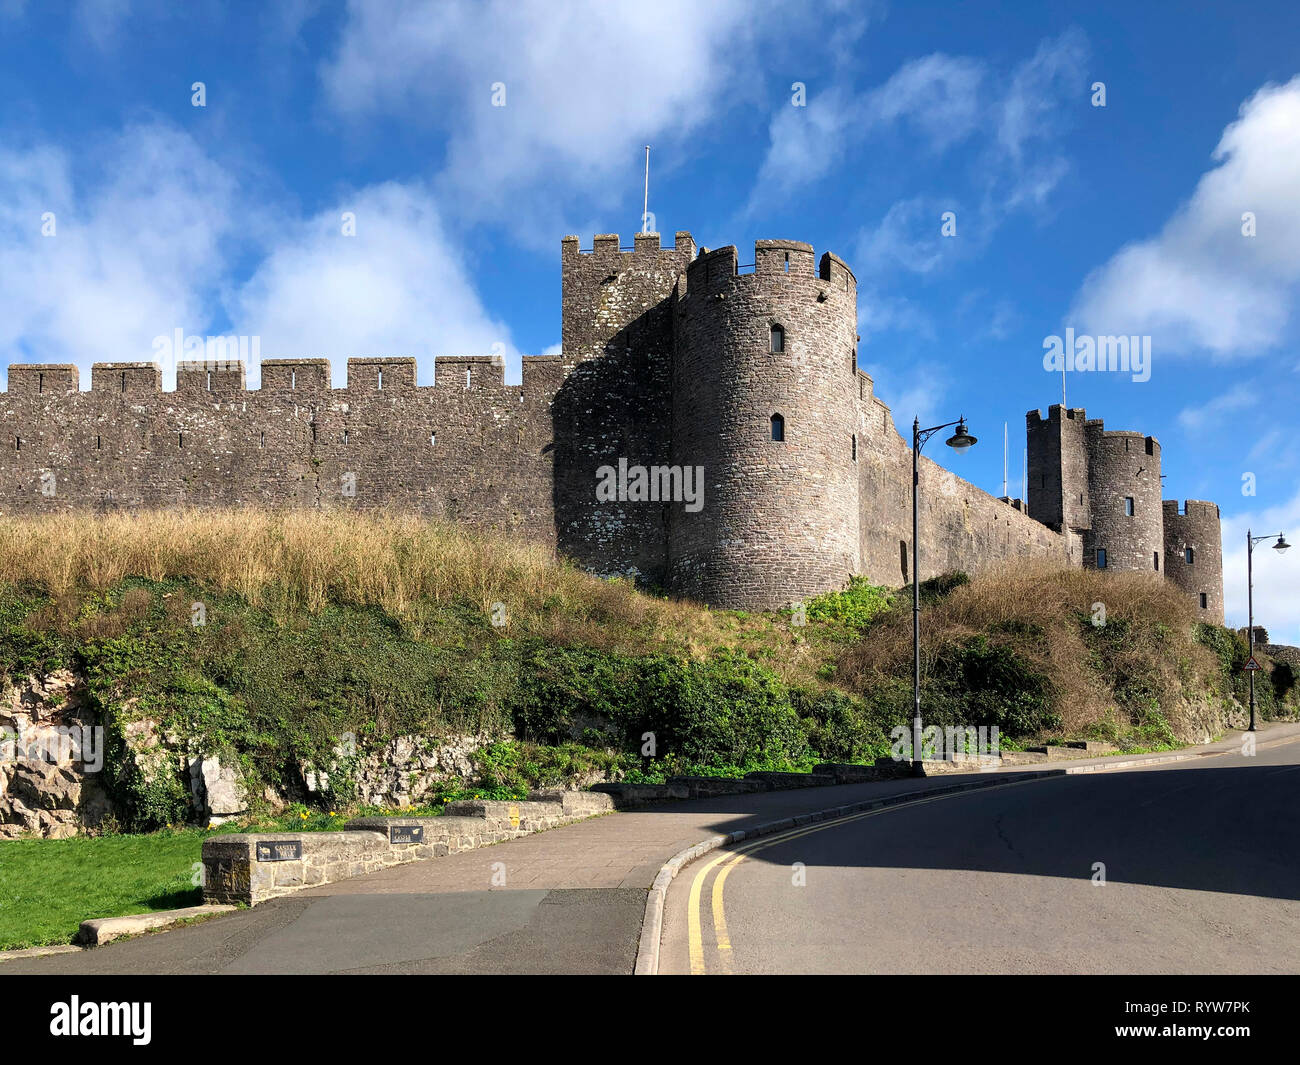 Pembroke Castle - medieval castle in Pembroke, Pembrokeshire, Wales. The castle was the original family seat of the Earldom of Pembroke. A Grade I lis Stock Photo